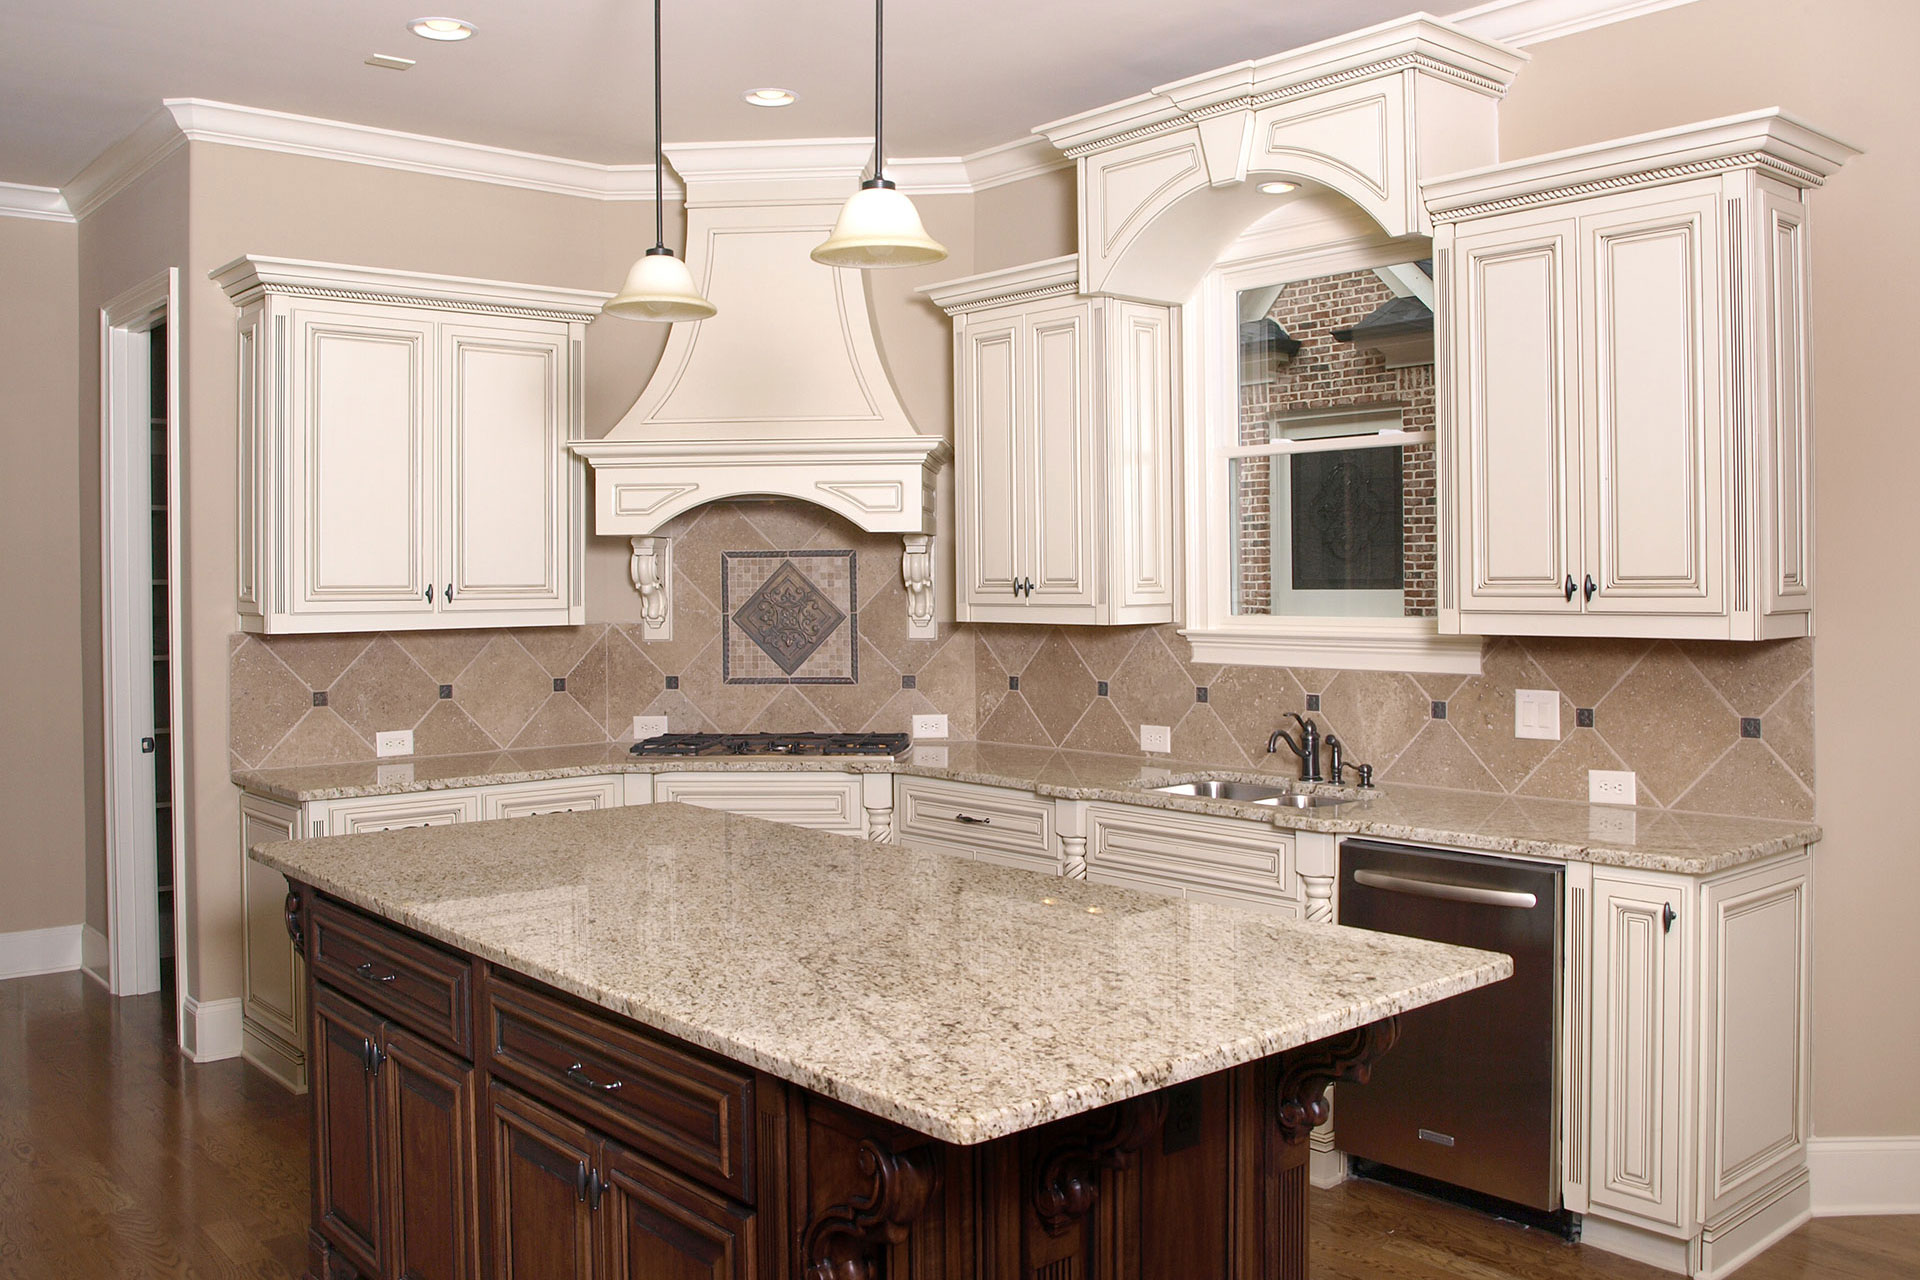 If You Are Building A New Home Or Remodeling Your Cur Kitchen Giuseppe And Bath Can Install The Quartz Countertops Ve Always Wanted